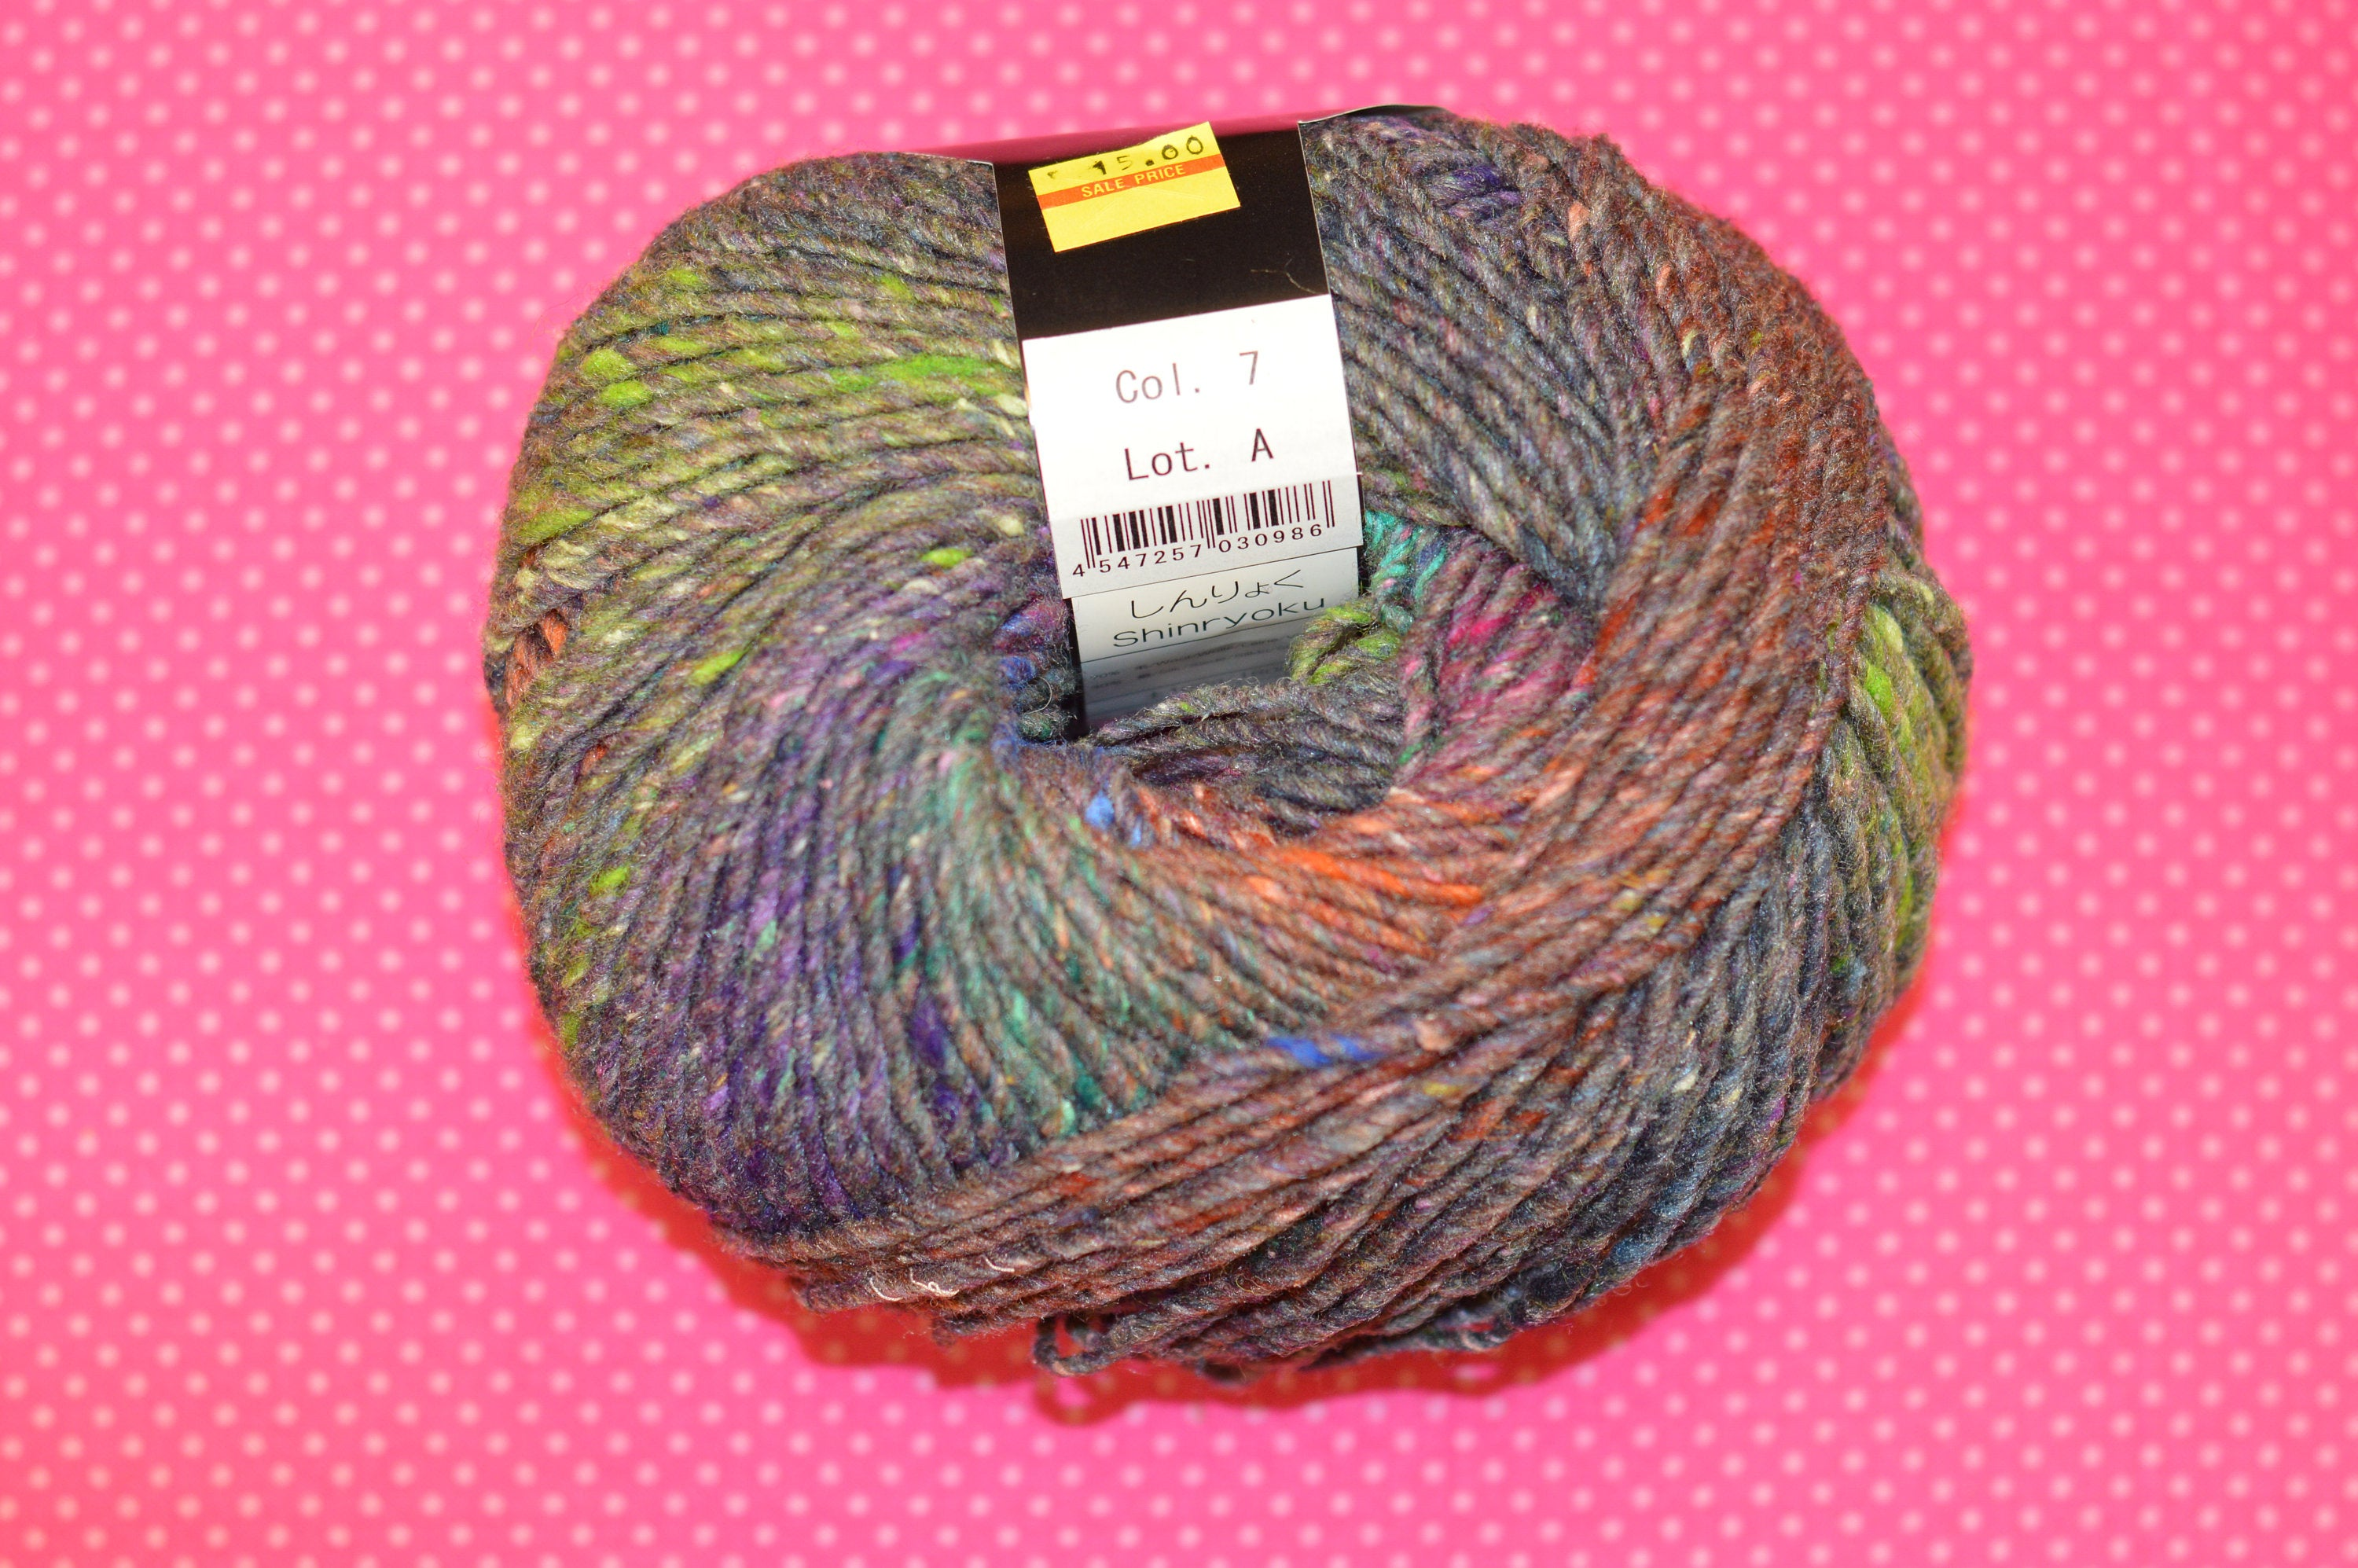 Noro Shinryoku Yarn Color 7 Lot A Wool, silk